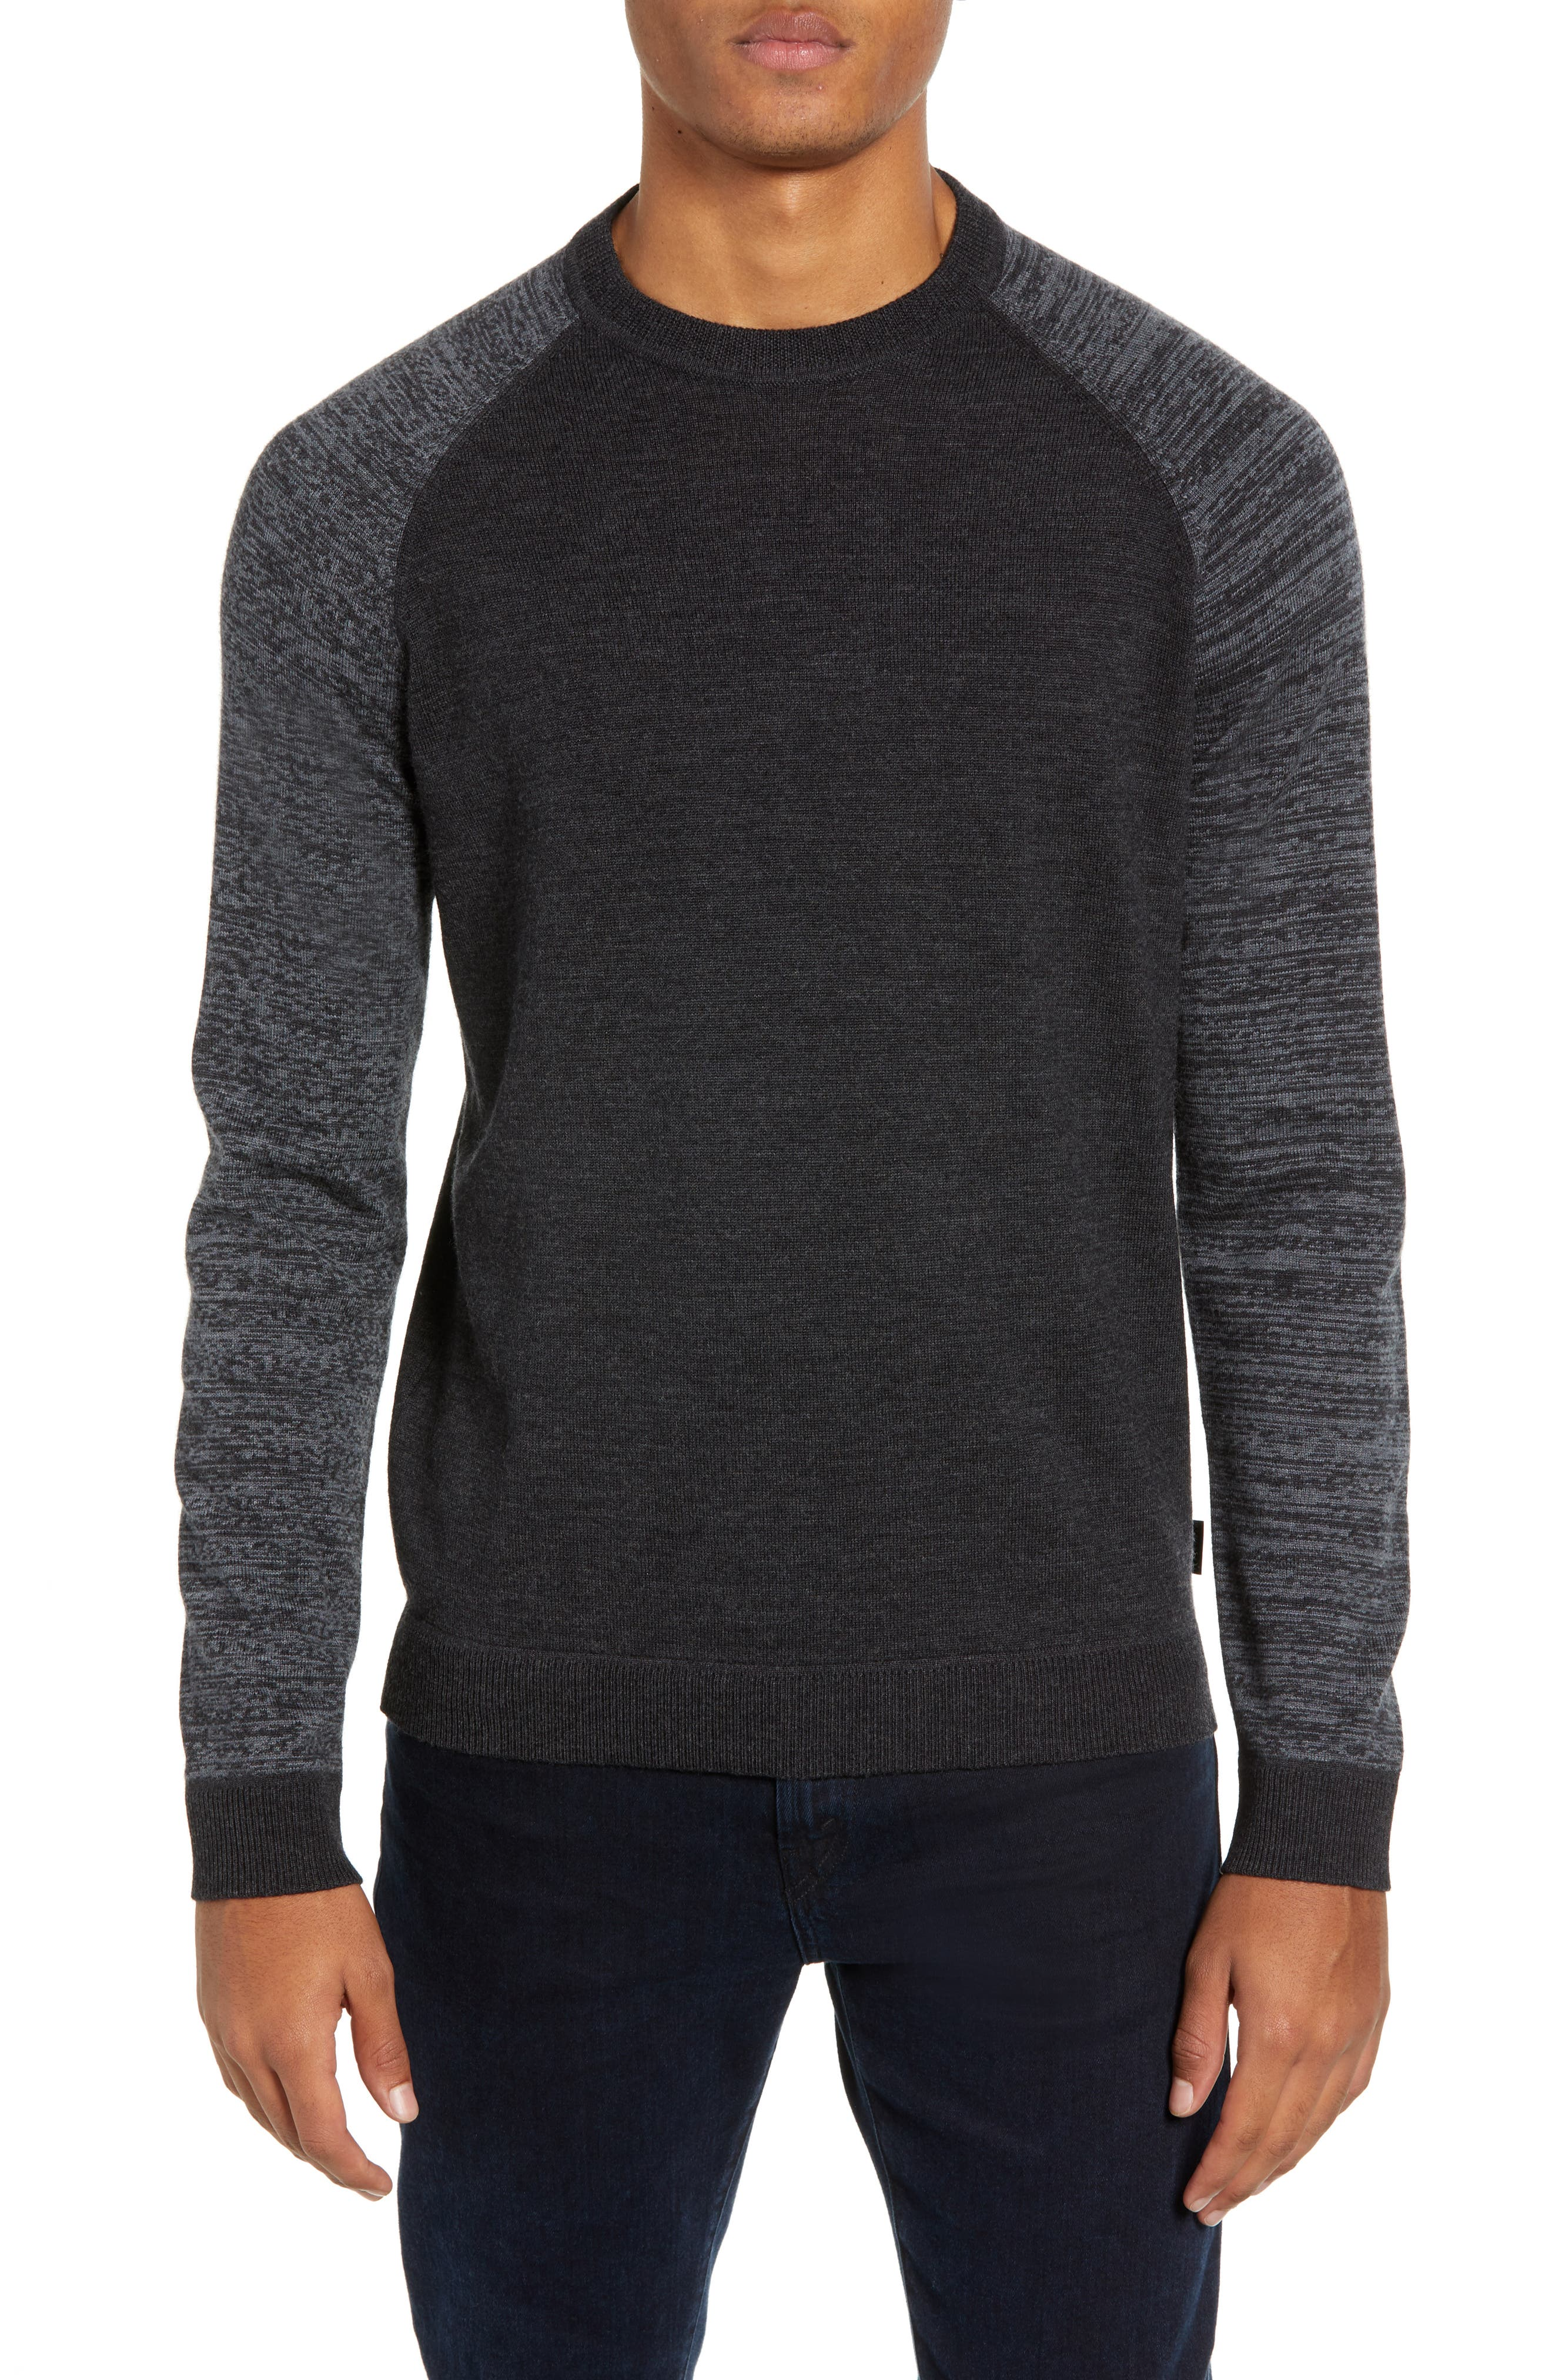 Cornfed Slim Fit Sweater,                             Main thumbnail 1, color,                             CHARCOAL